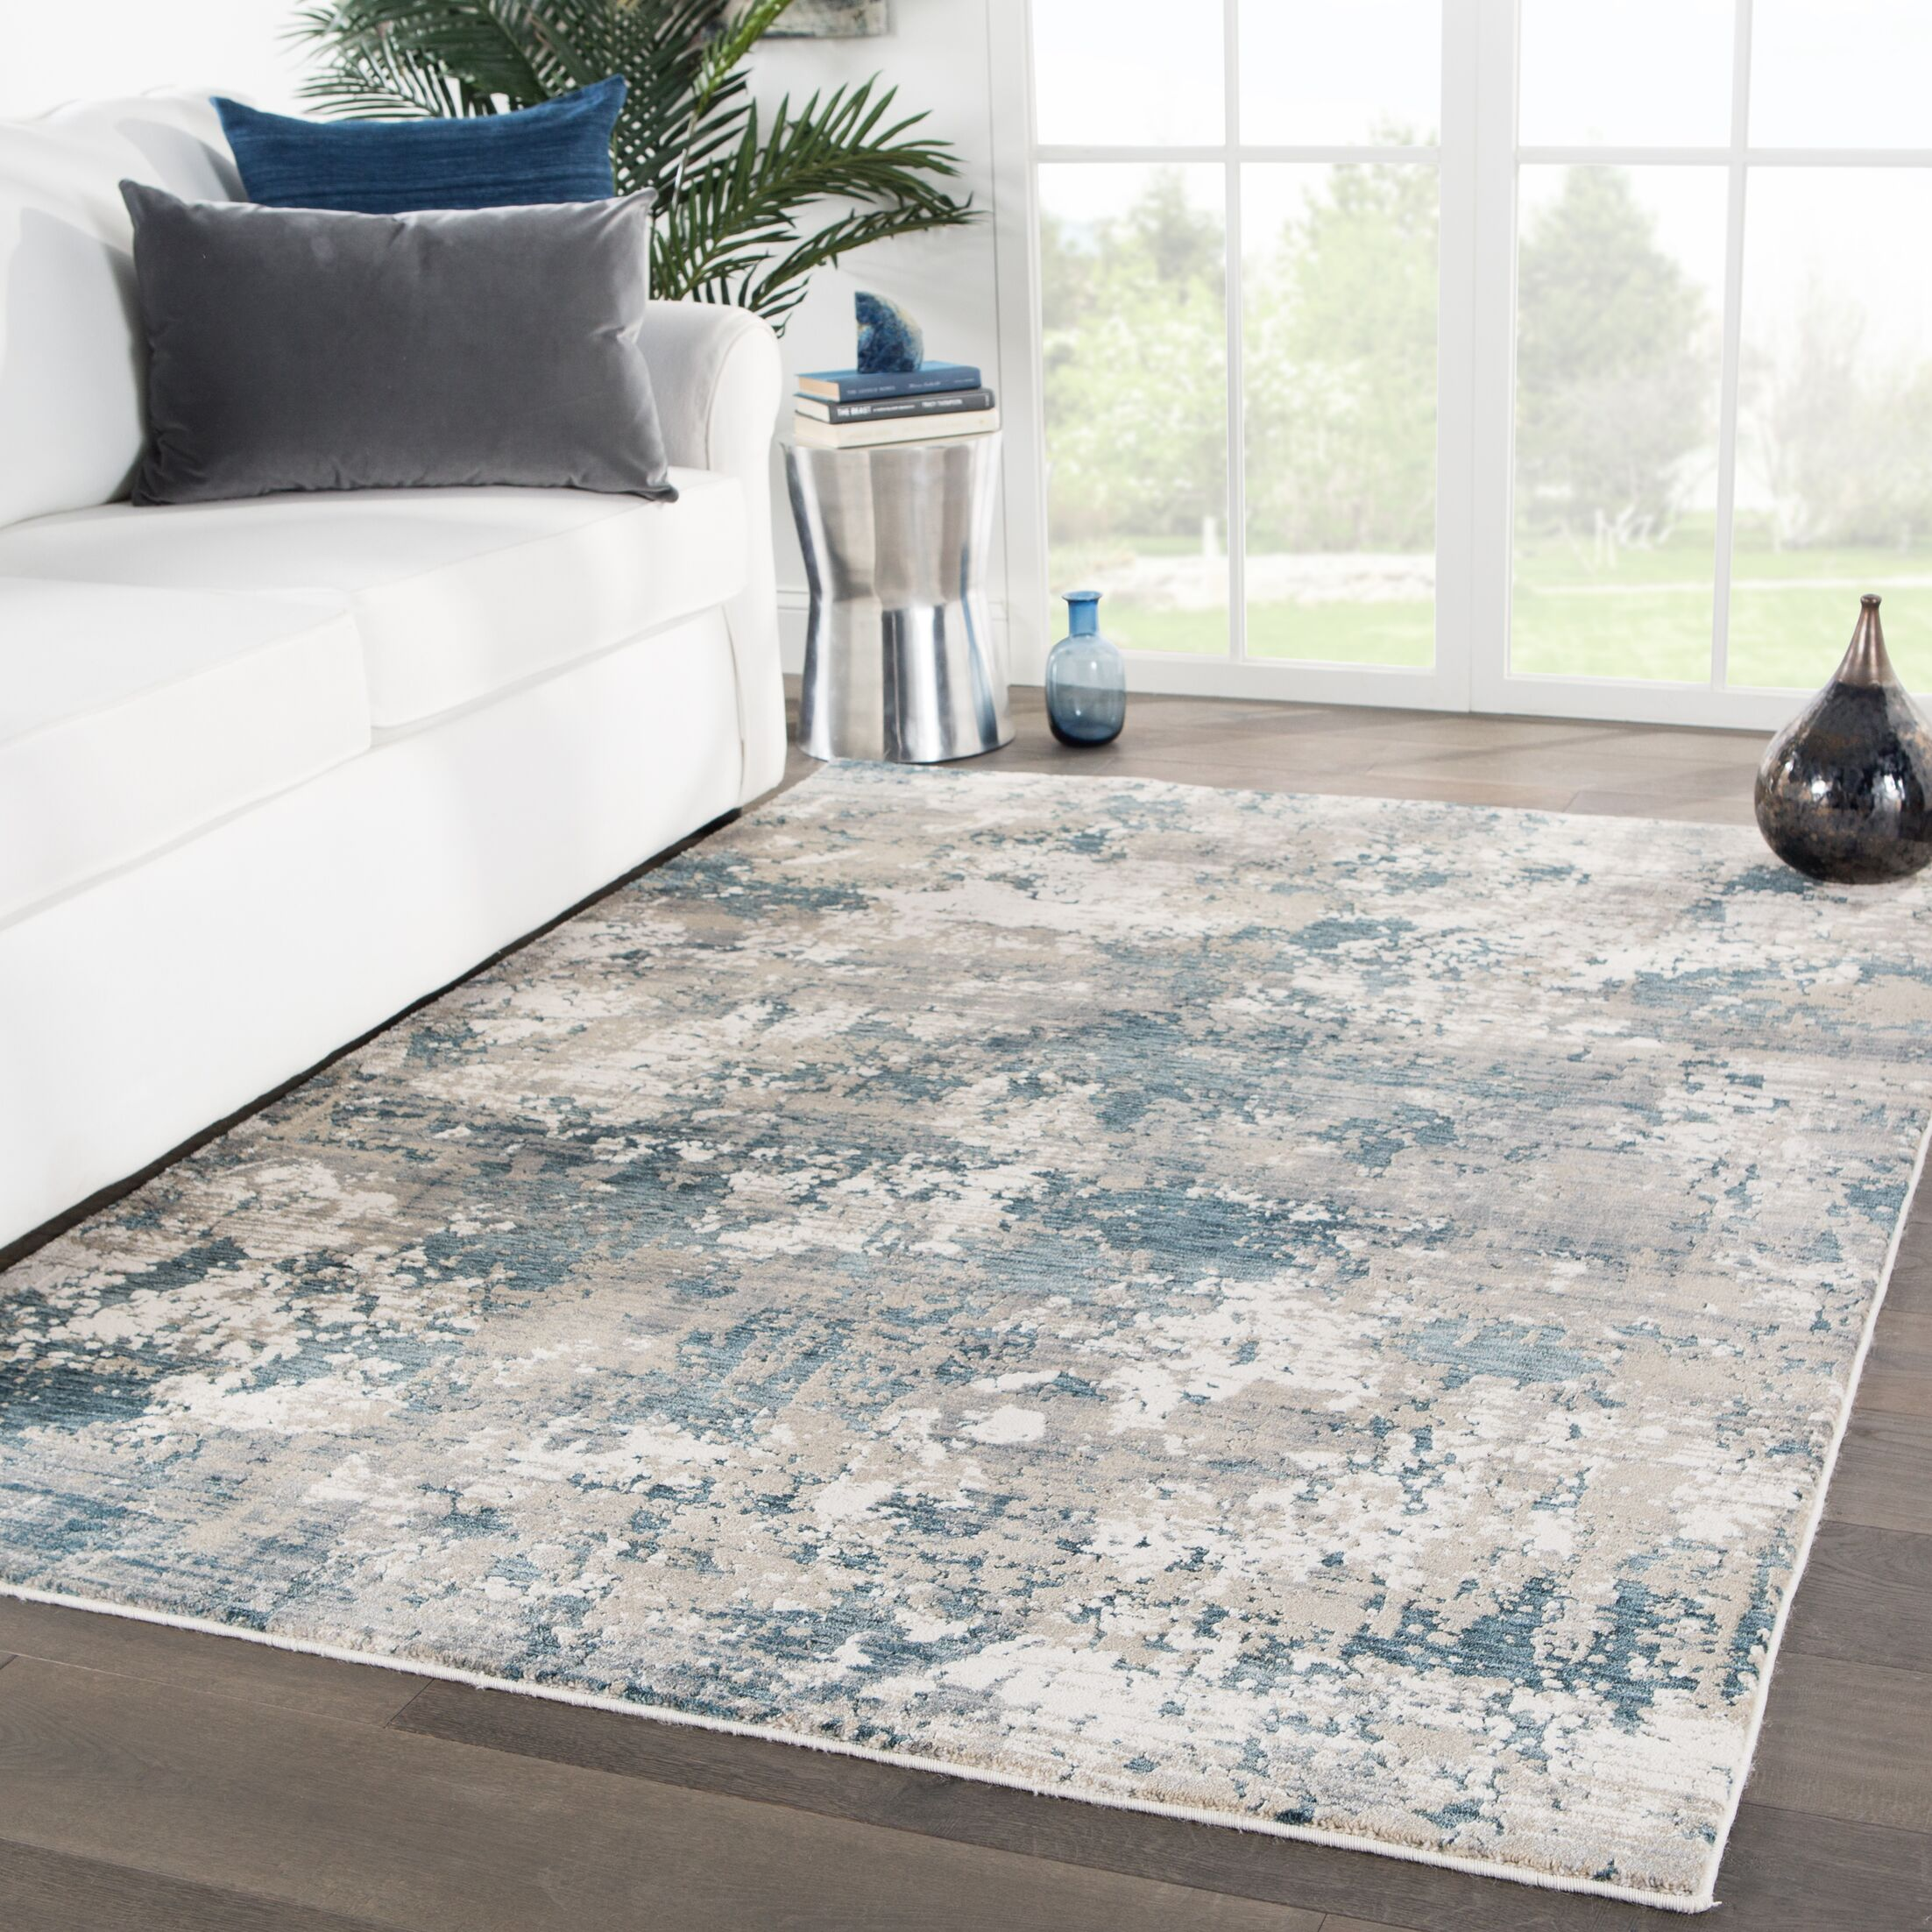 Andrews Abstract Blue/Gray Area Rug Rug Size: Rectangle 4' x 5'7